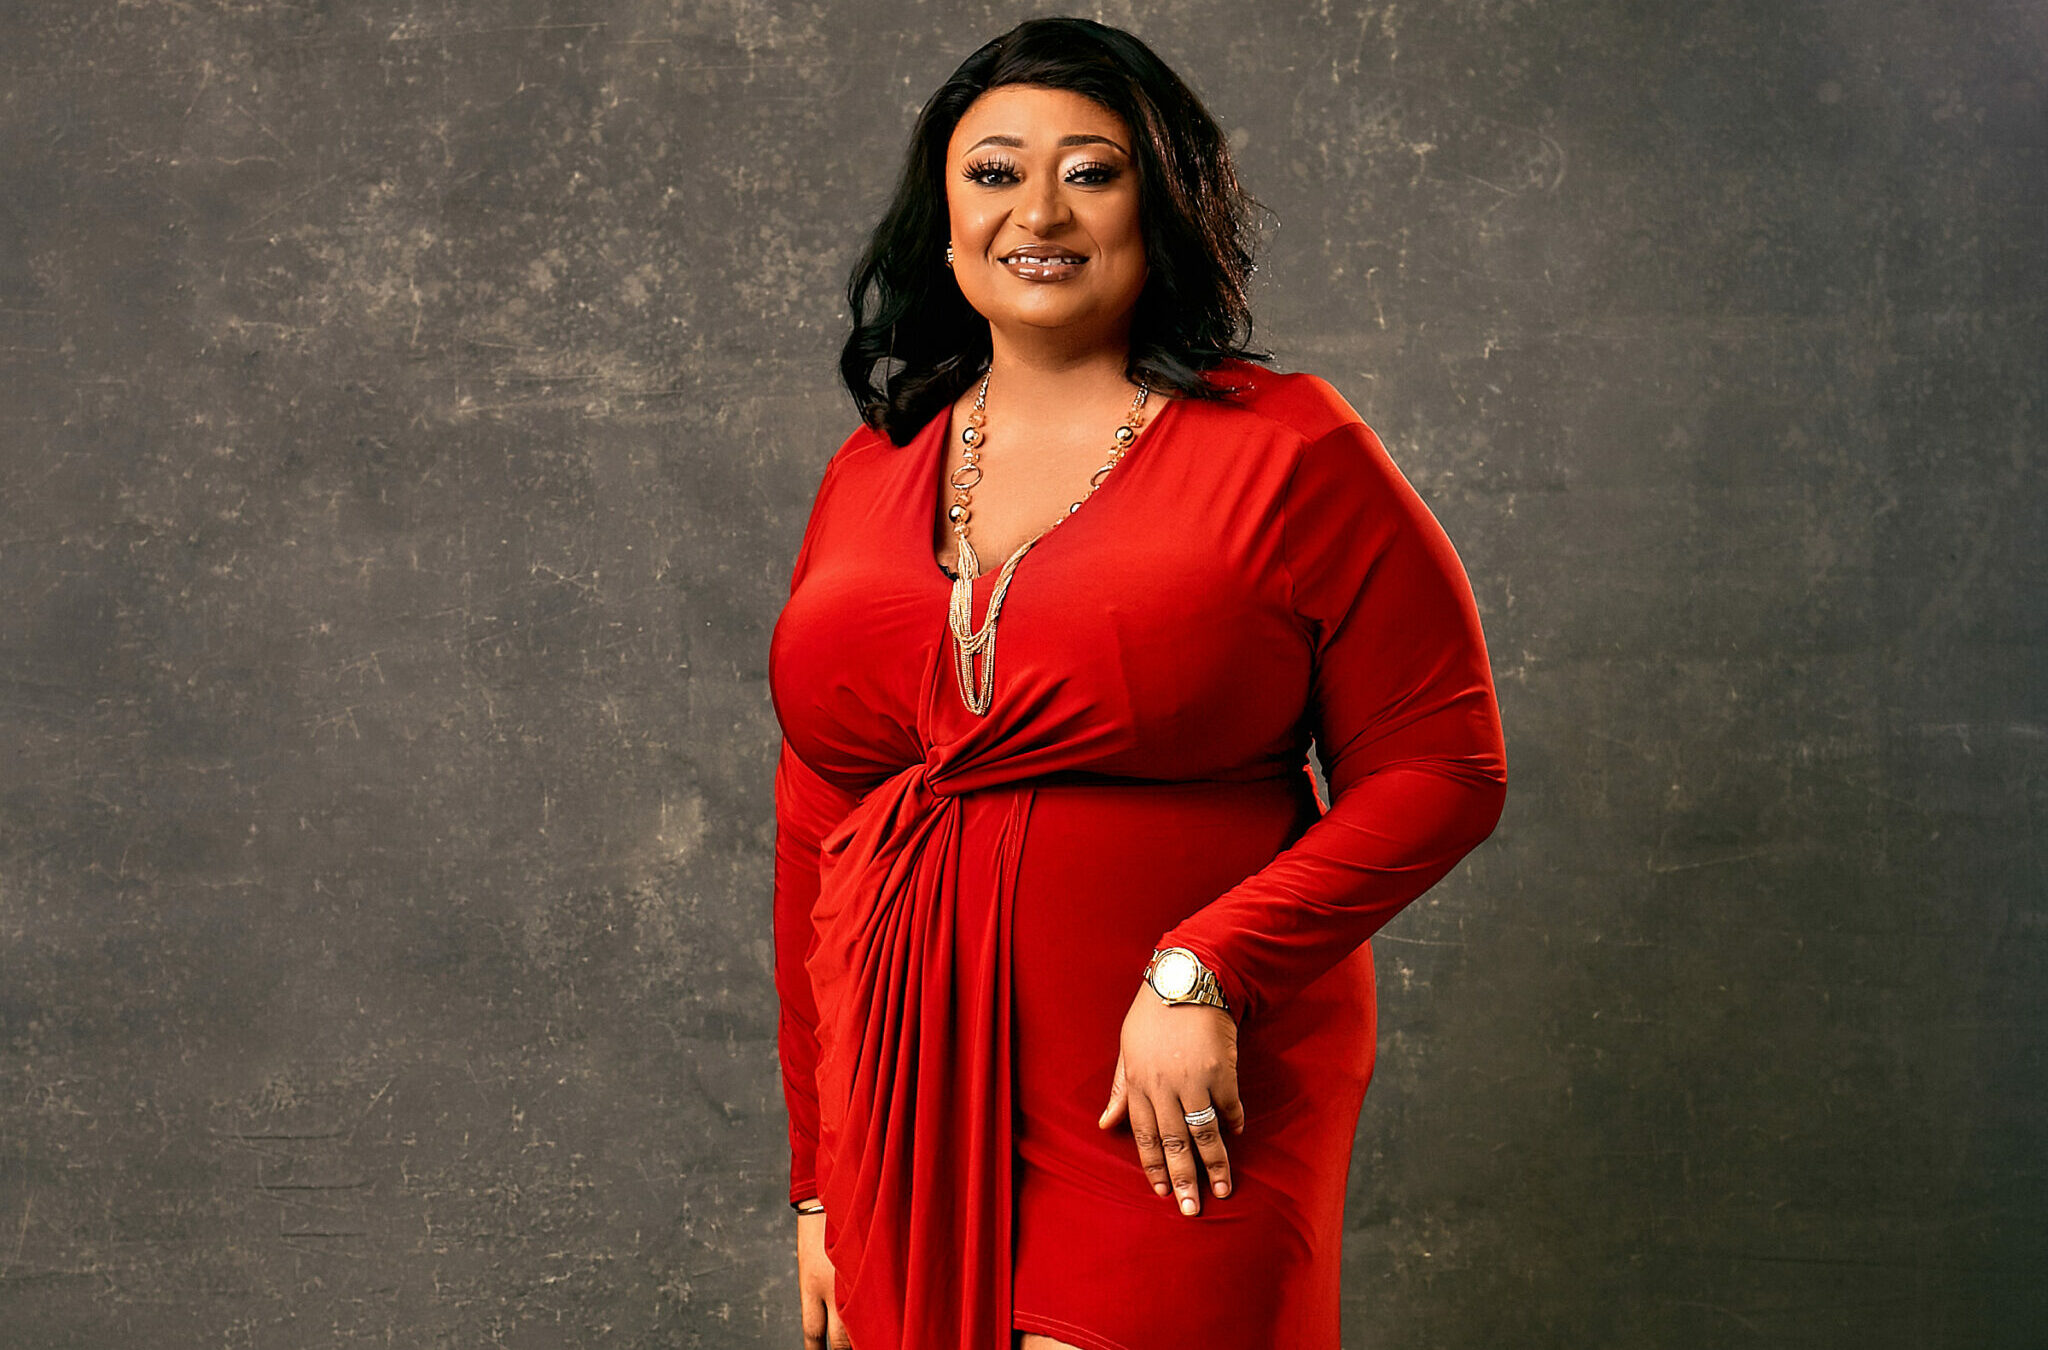 I want people to see new version of me – Ronke Ojo - Vanguard News